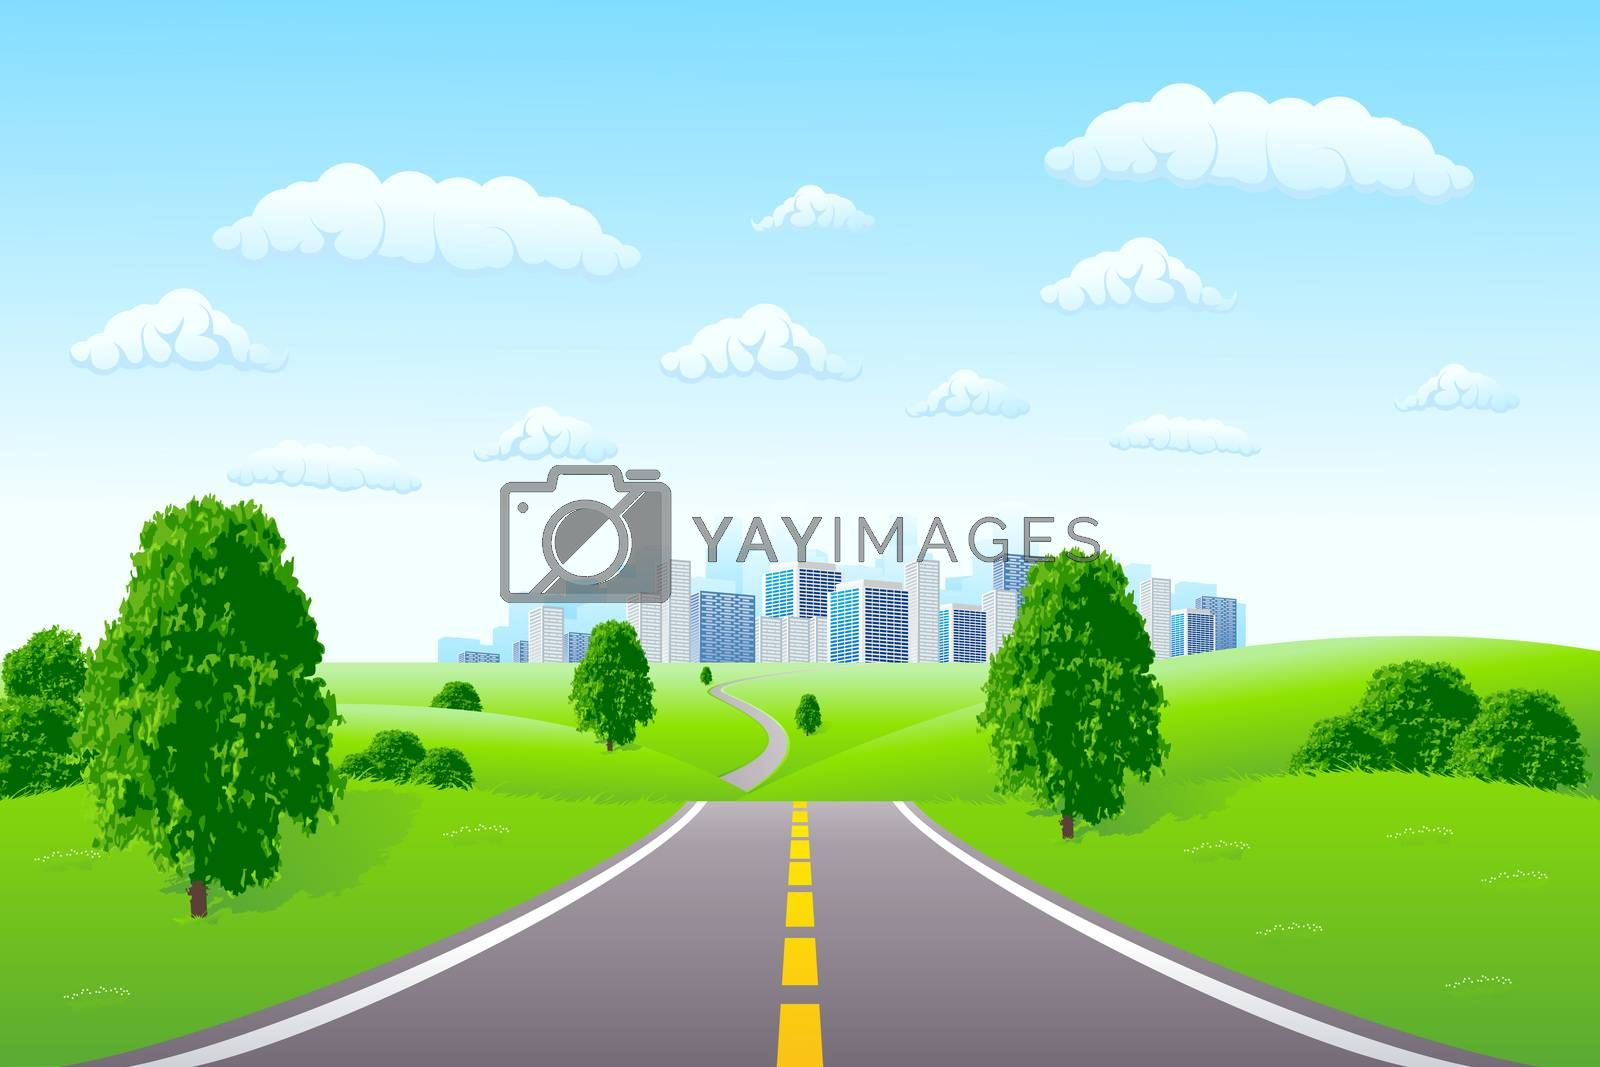 Landscape with city by WaD